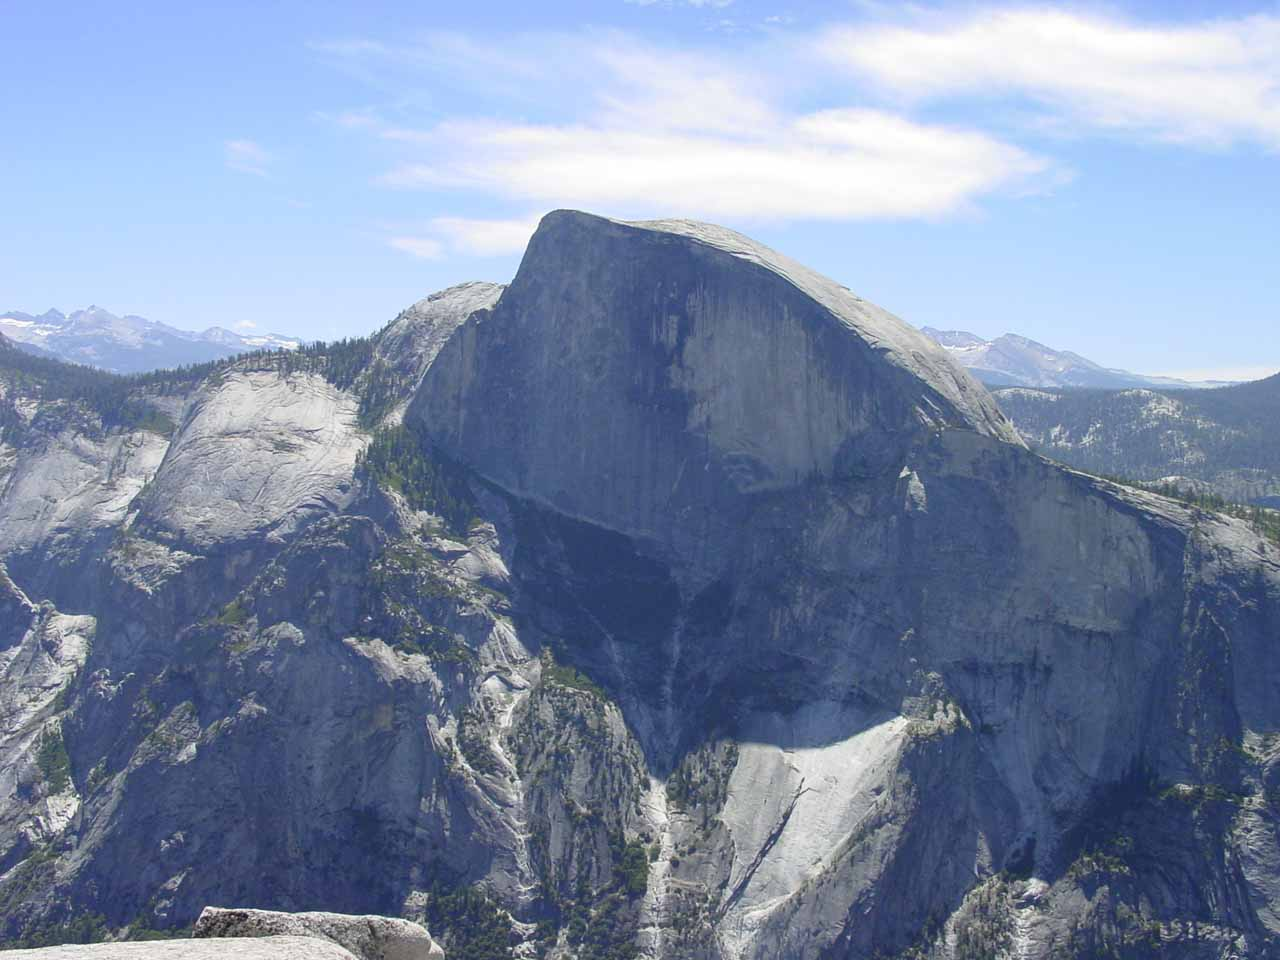 Frontal view of Half Dome from North Dome